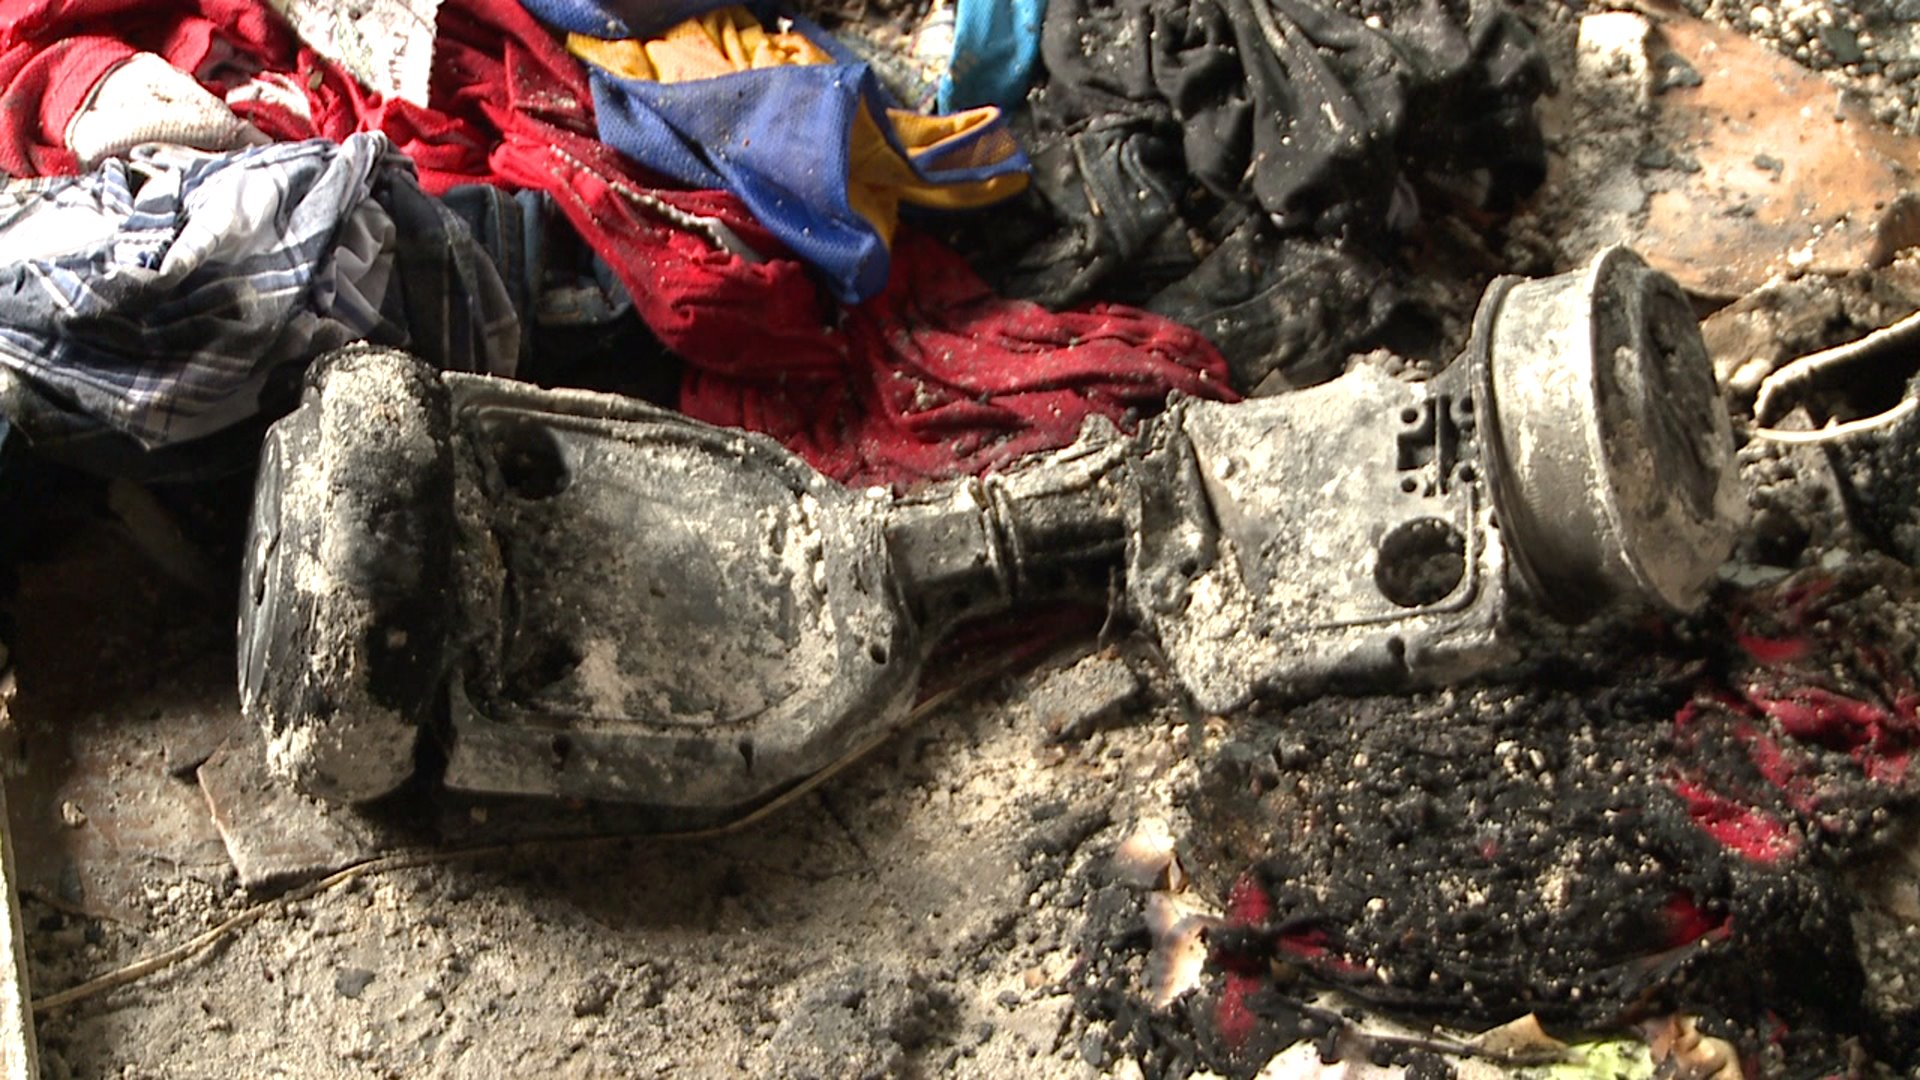 What's left of a hoverboard after an apparent explosion and fire in a Lafitte home.